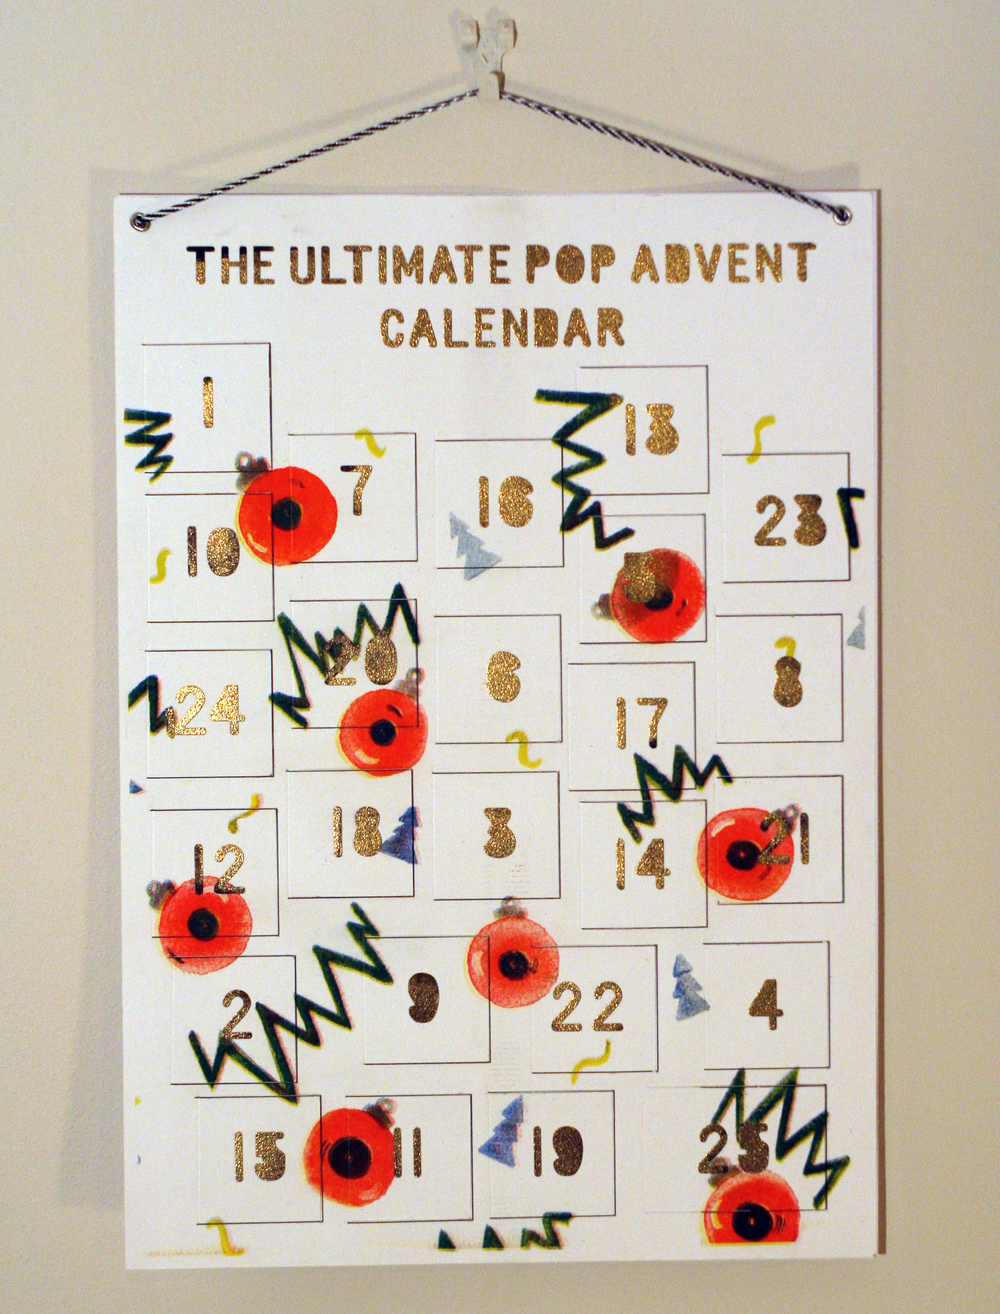 The Ultimate Pop Advent Calendar  on sale now. By Emily Catherine Illustration.